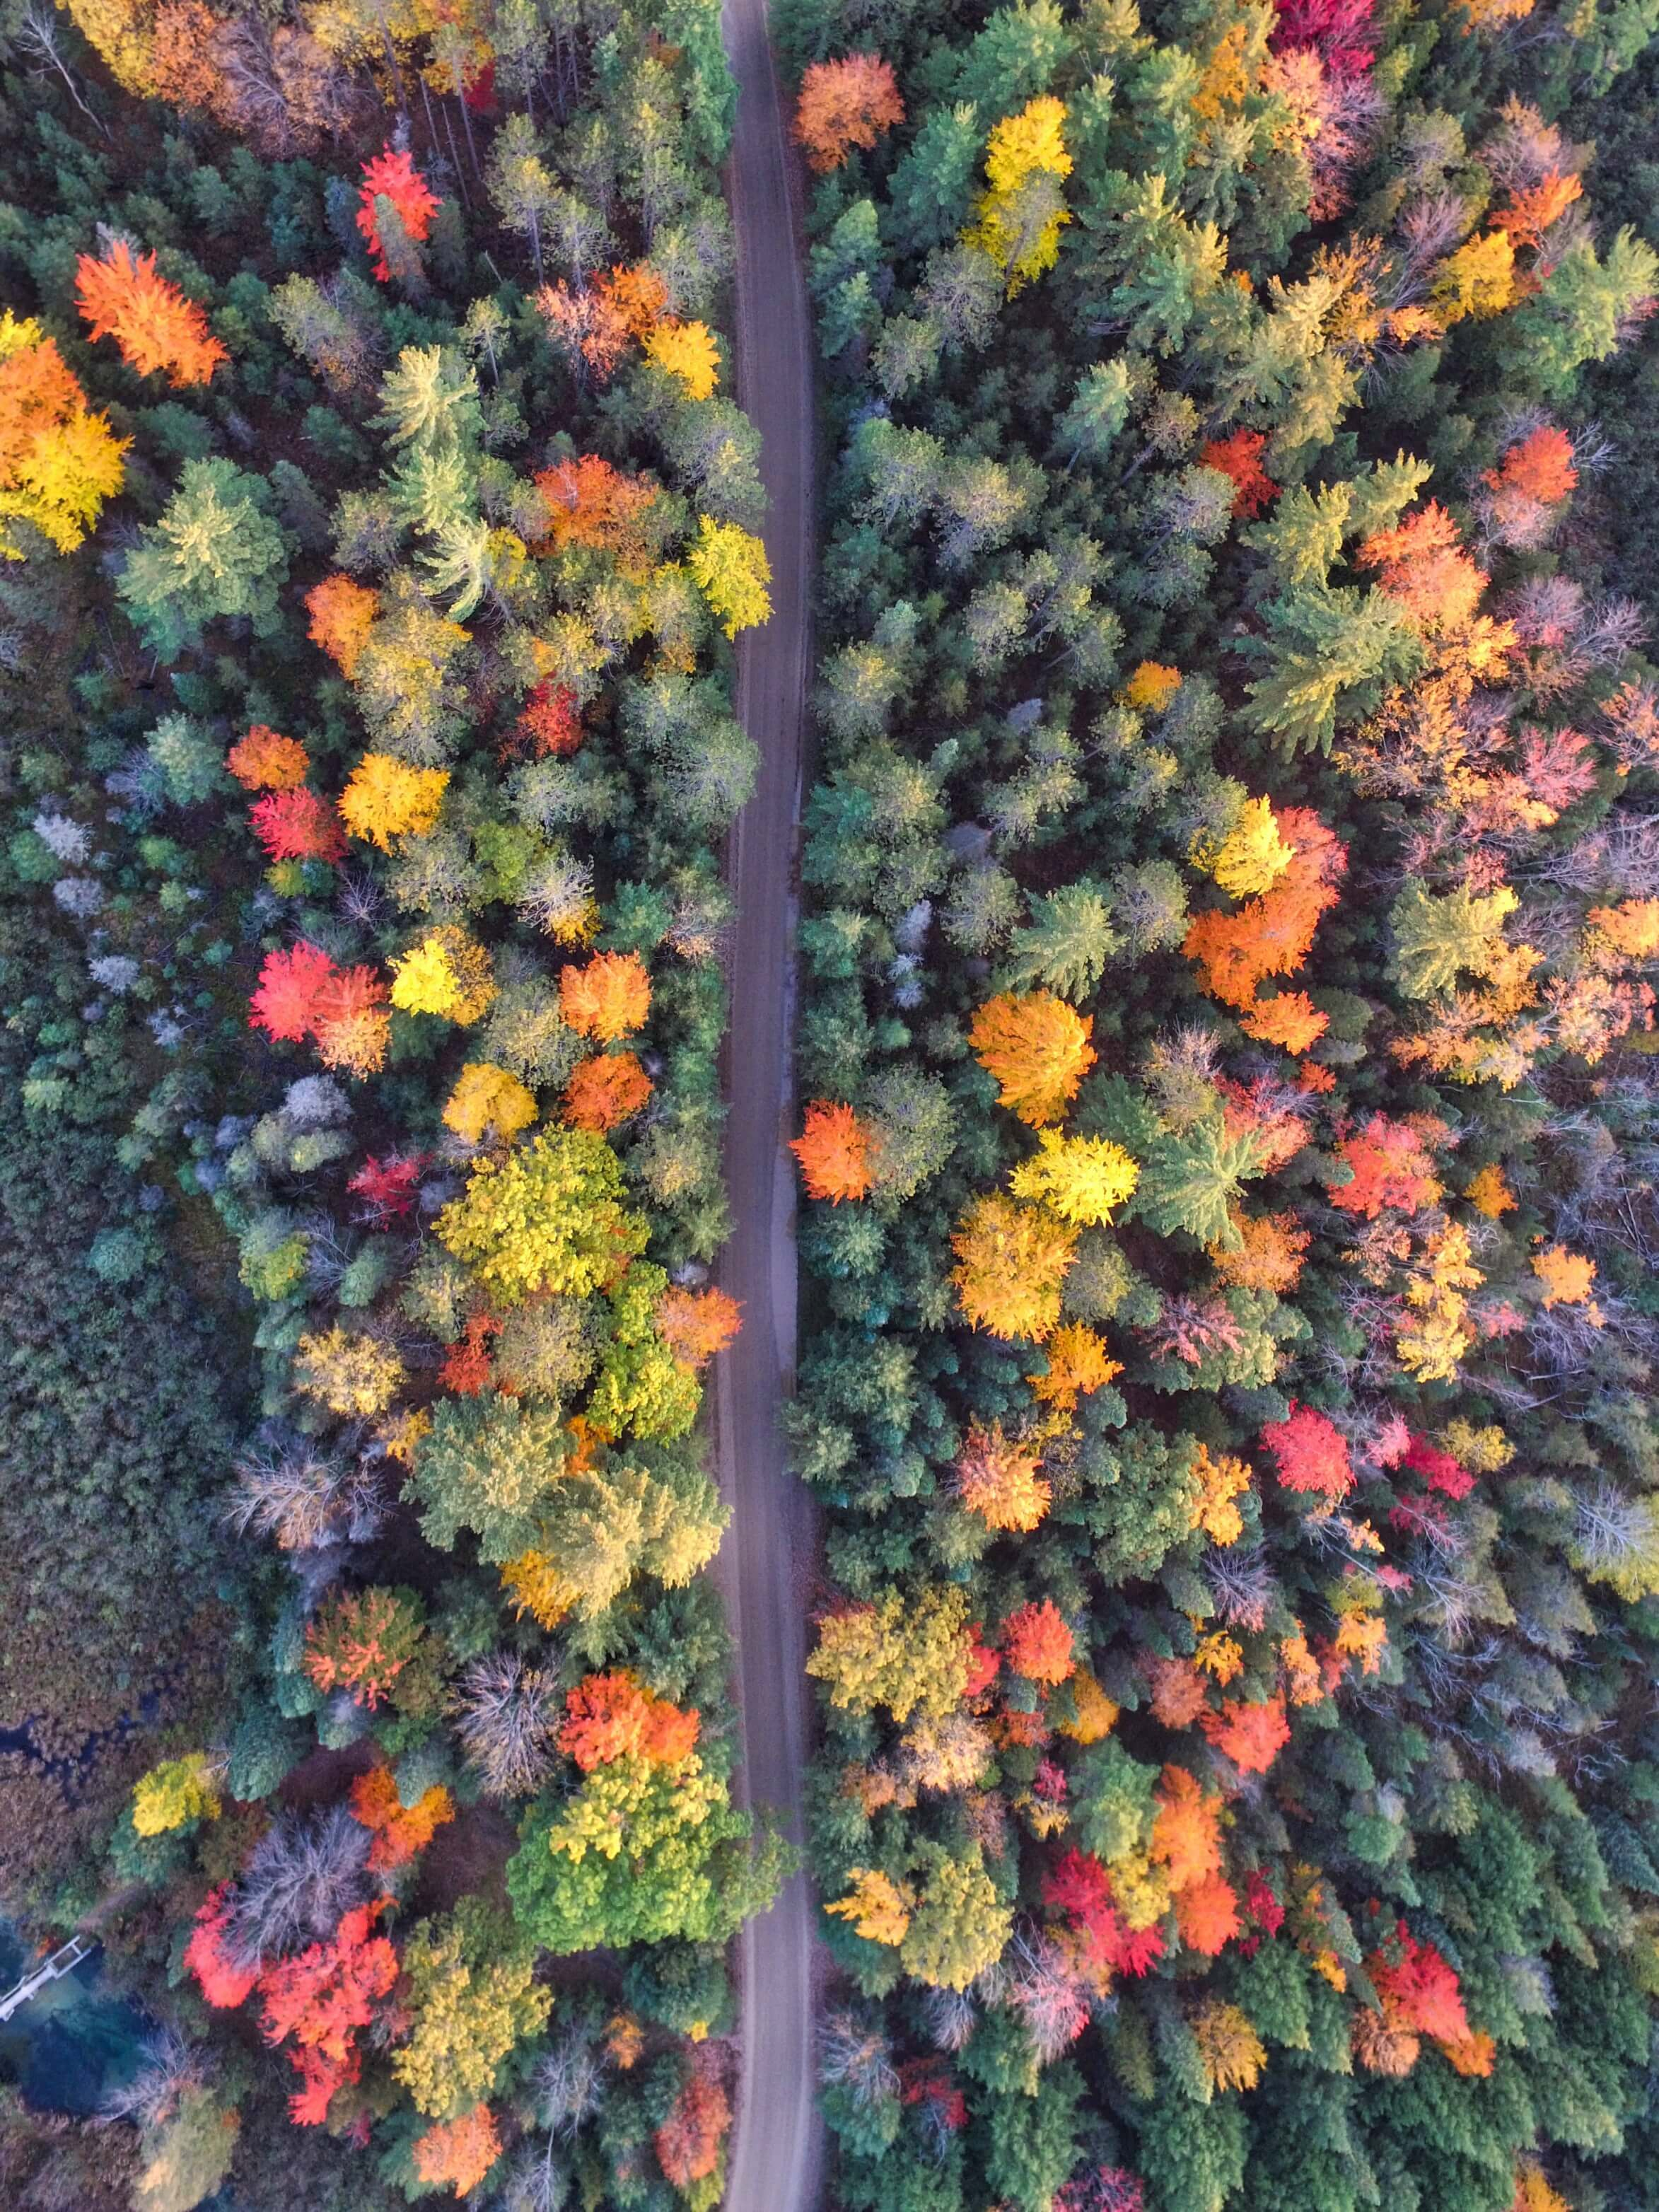 TOP 5 DESTINATIONS TO SEE THE FALL COLOURS